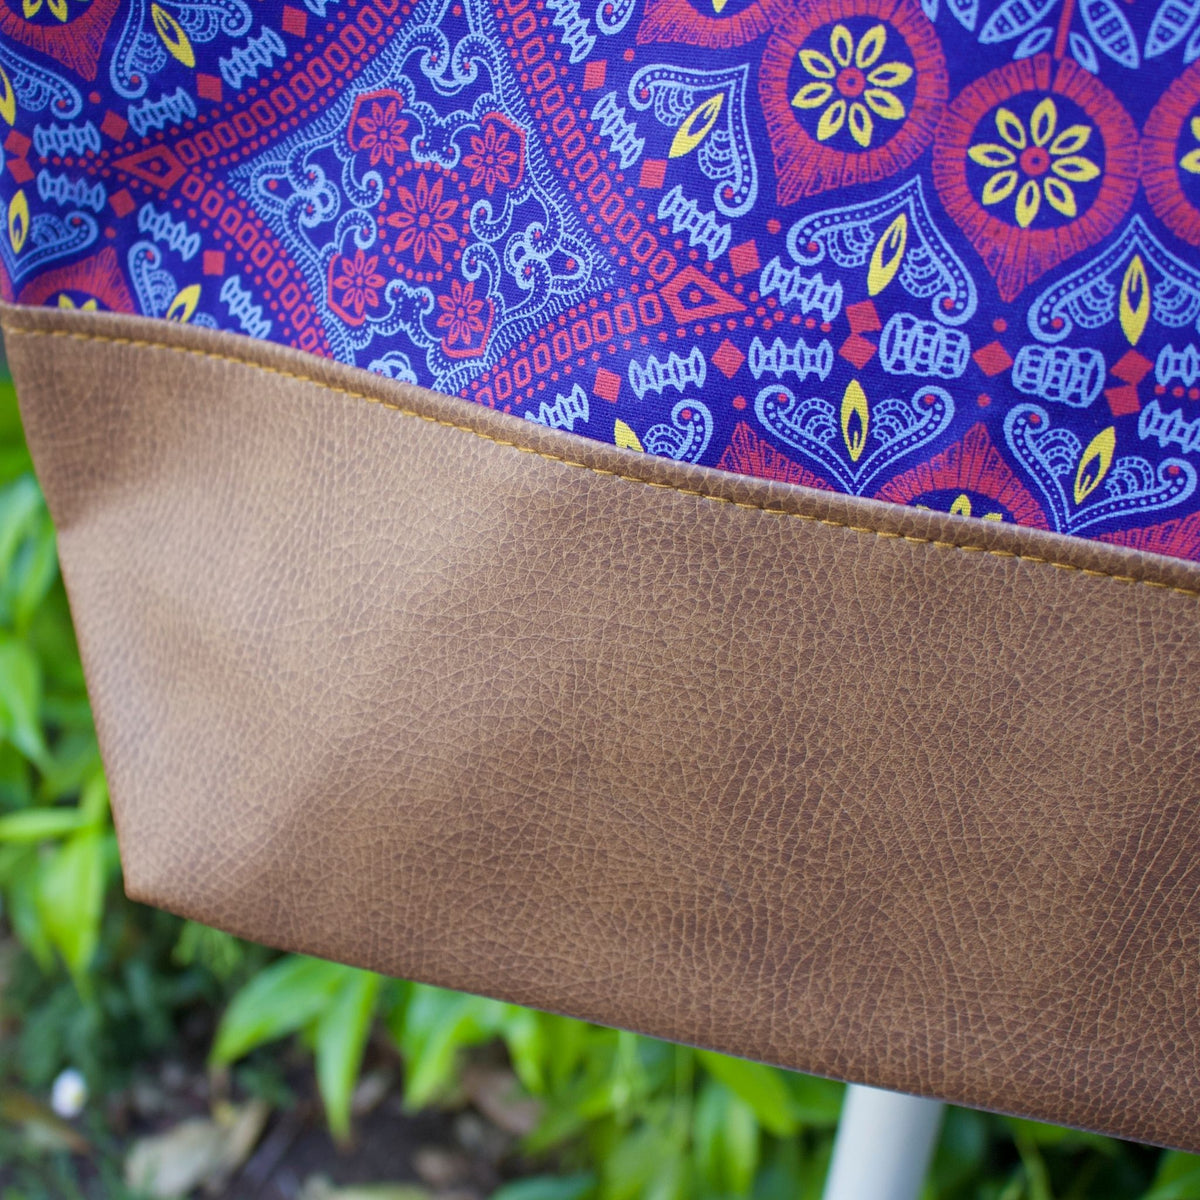 Shwe Leather-Look Tote Bag